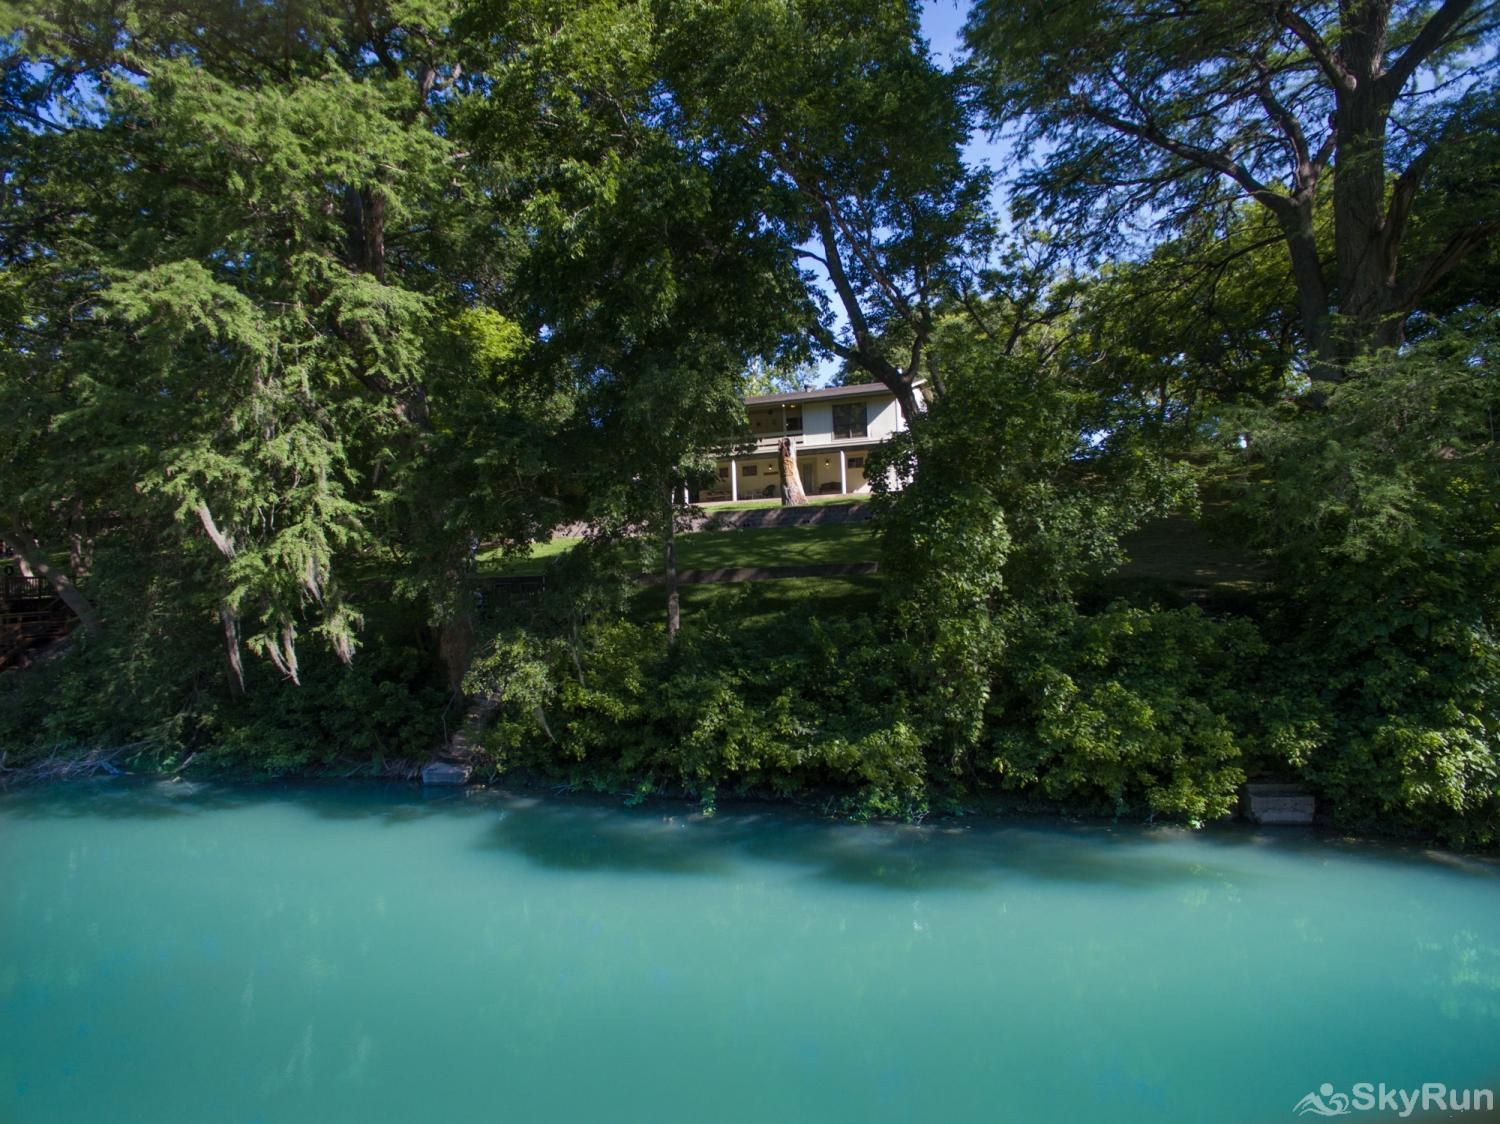 MAC'S PLACE Charming, relaxing home nestled on the Guadalupe River